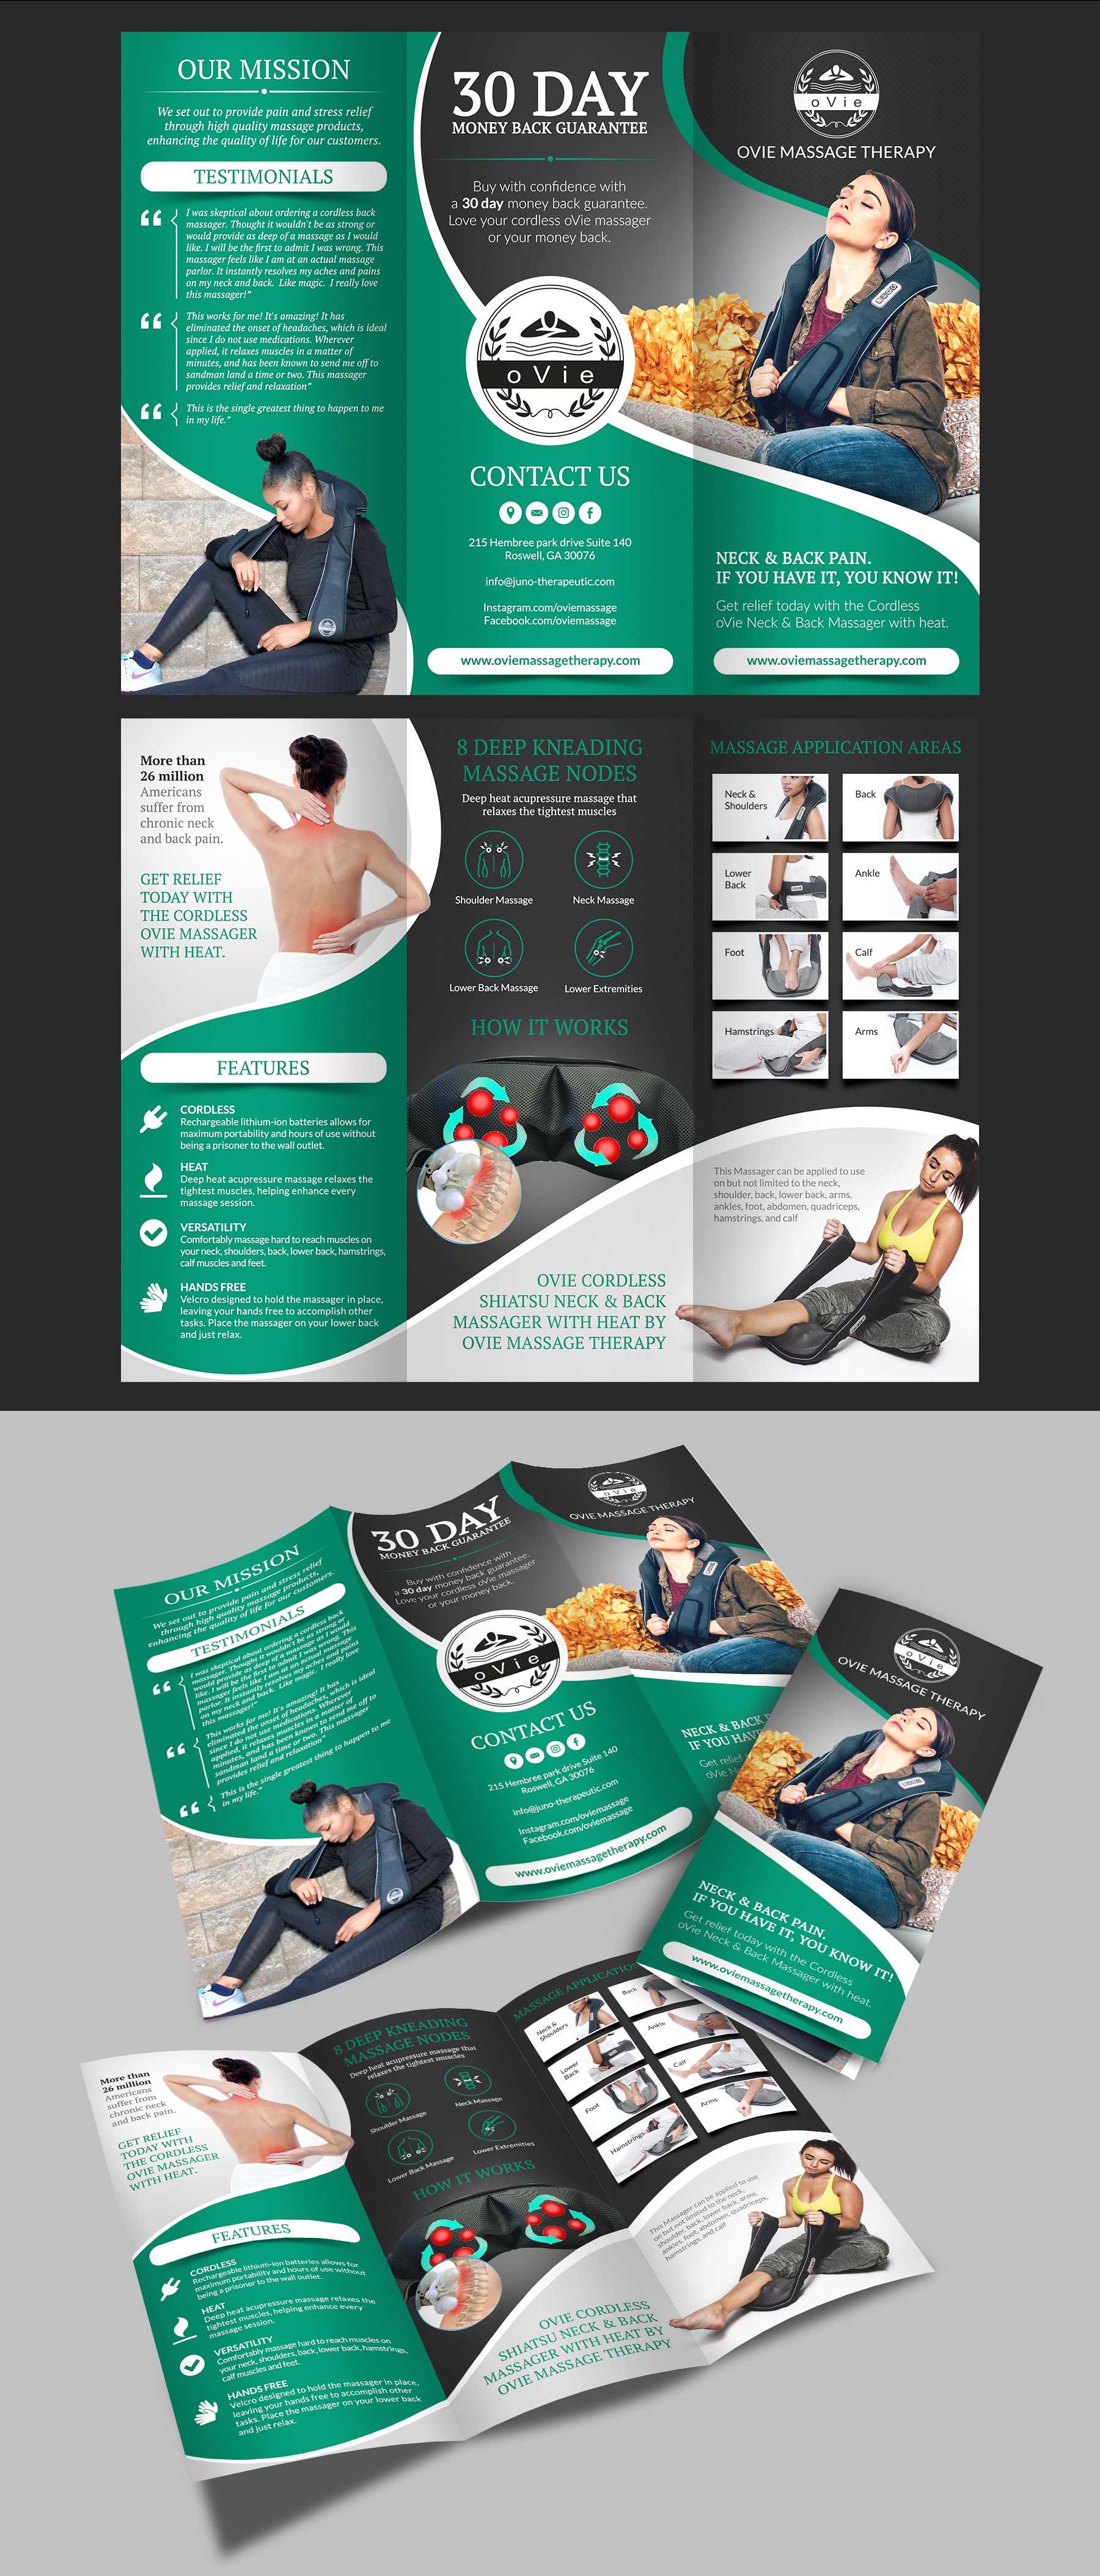 Ovie massage therapy brochure